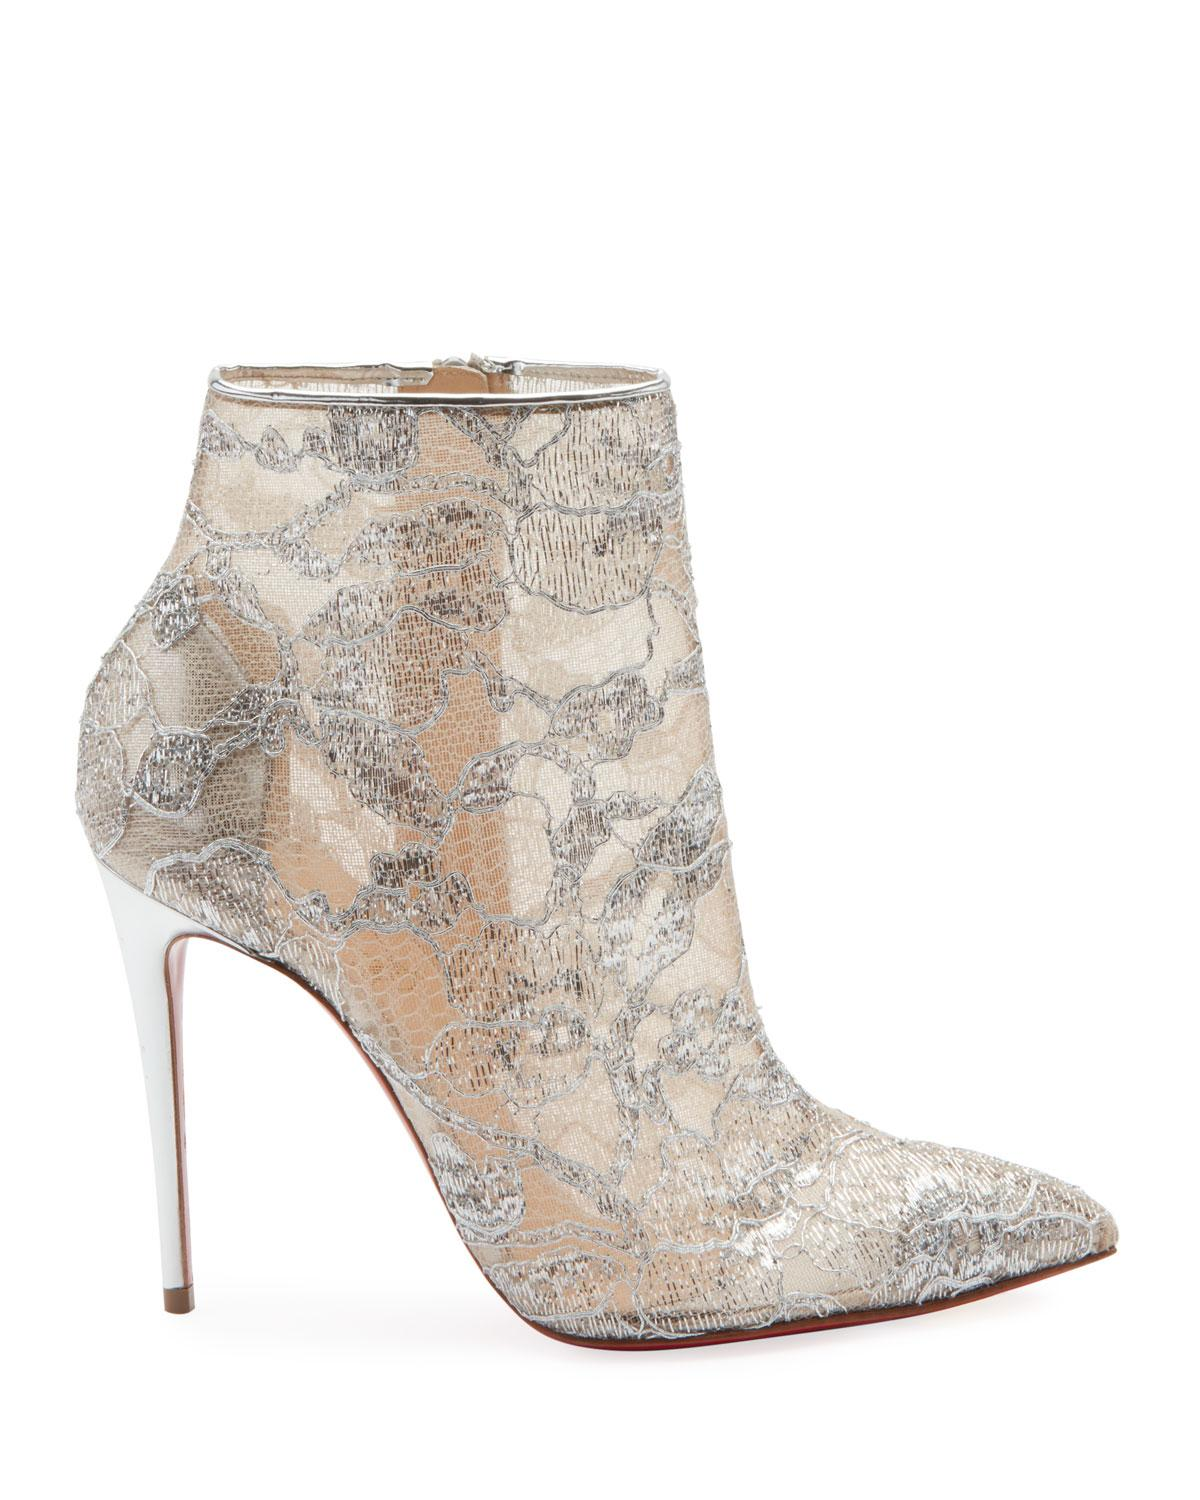 1464256f8151 Christian Louboutin Gipsybootie Alencon Lace Bootie in Metallic - Lyst